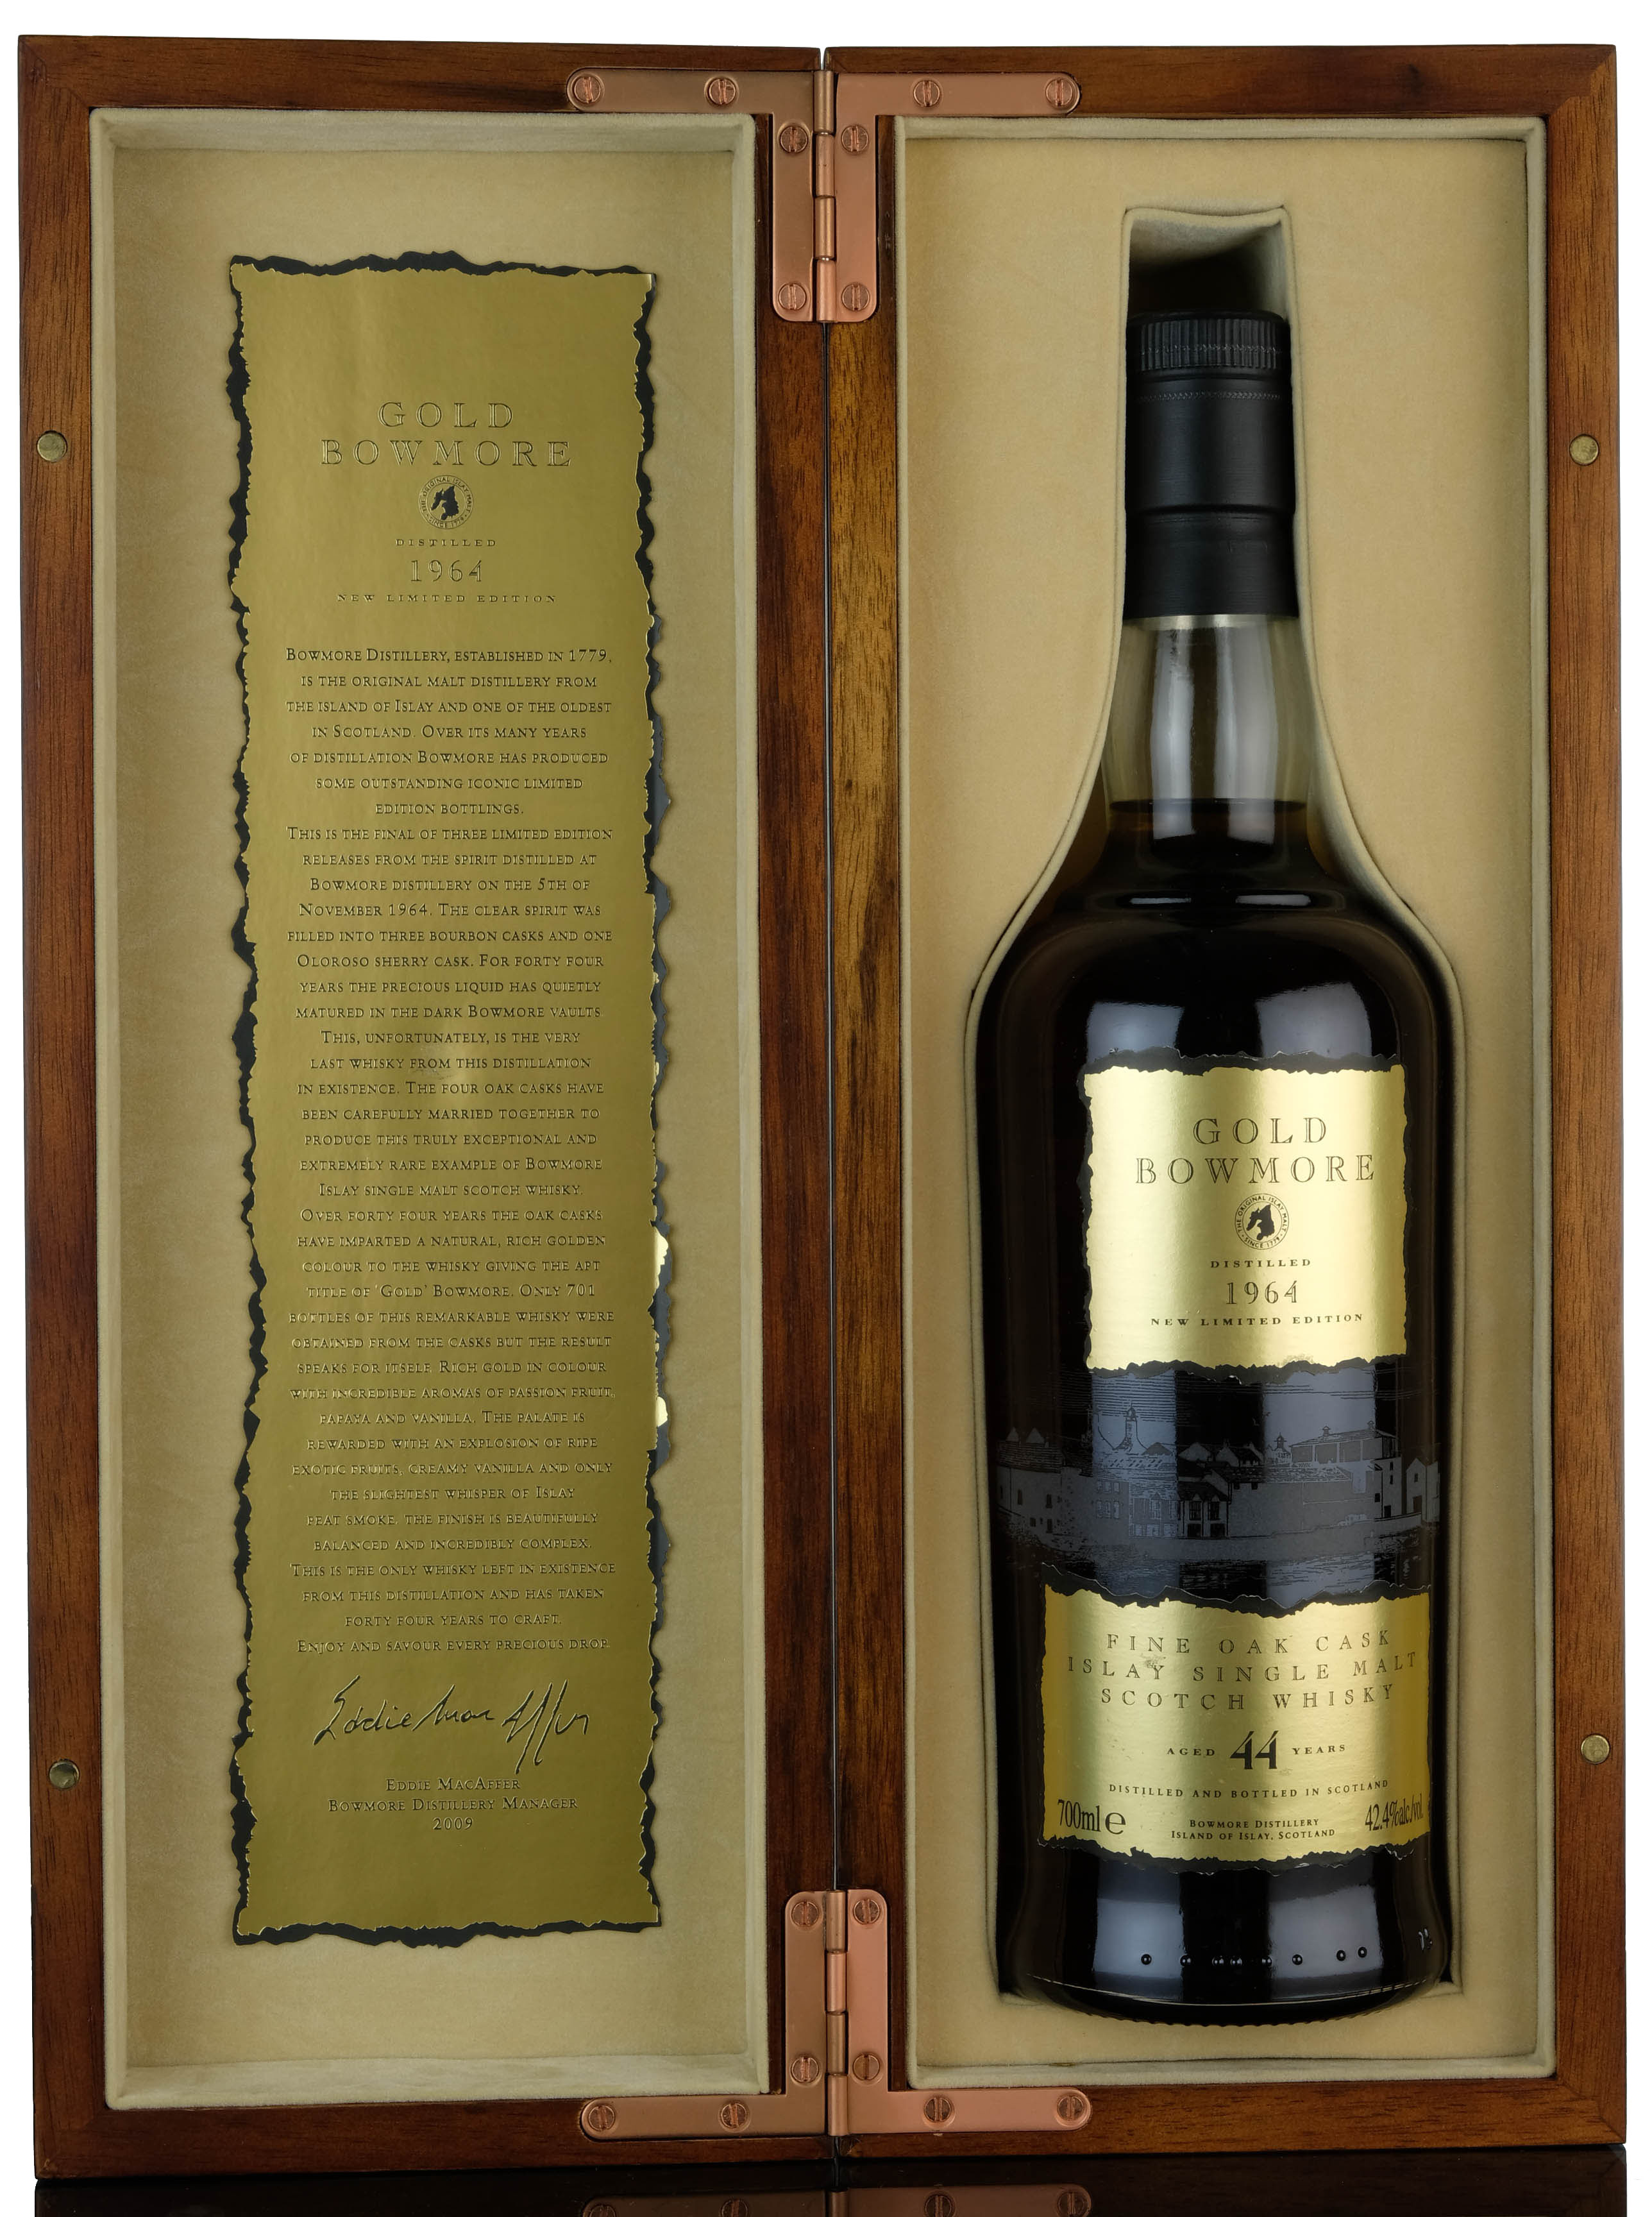 gold bowmore 1964 - 44 year old